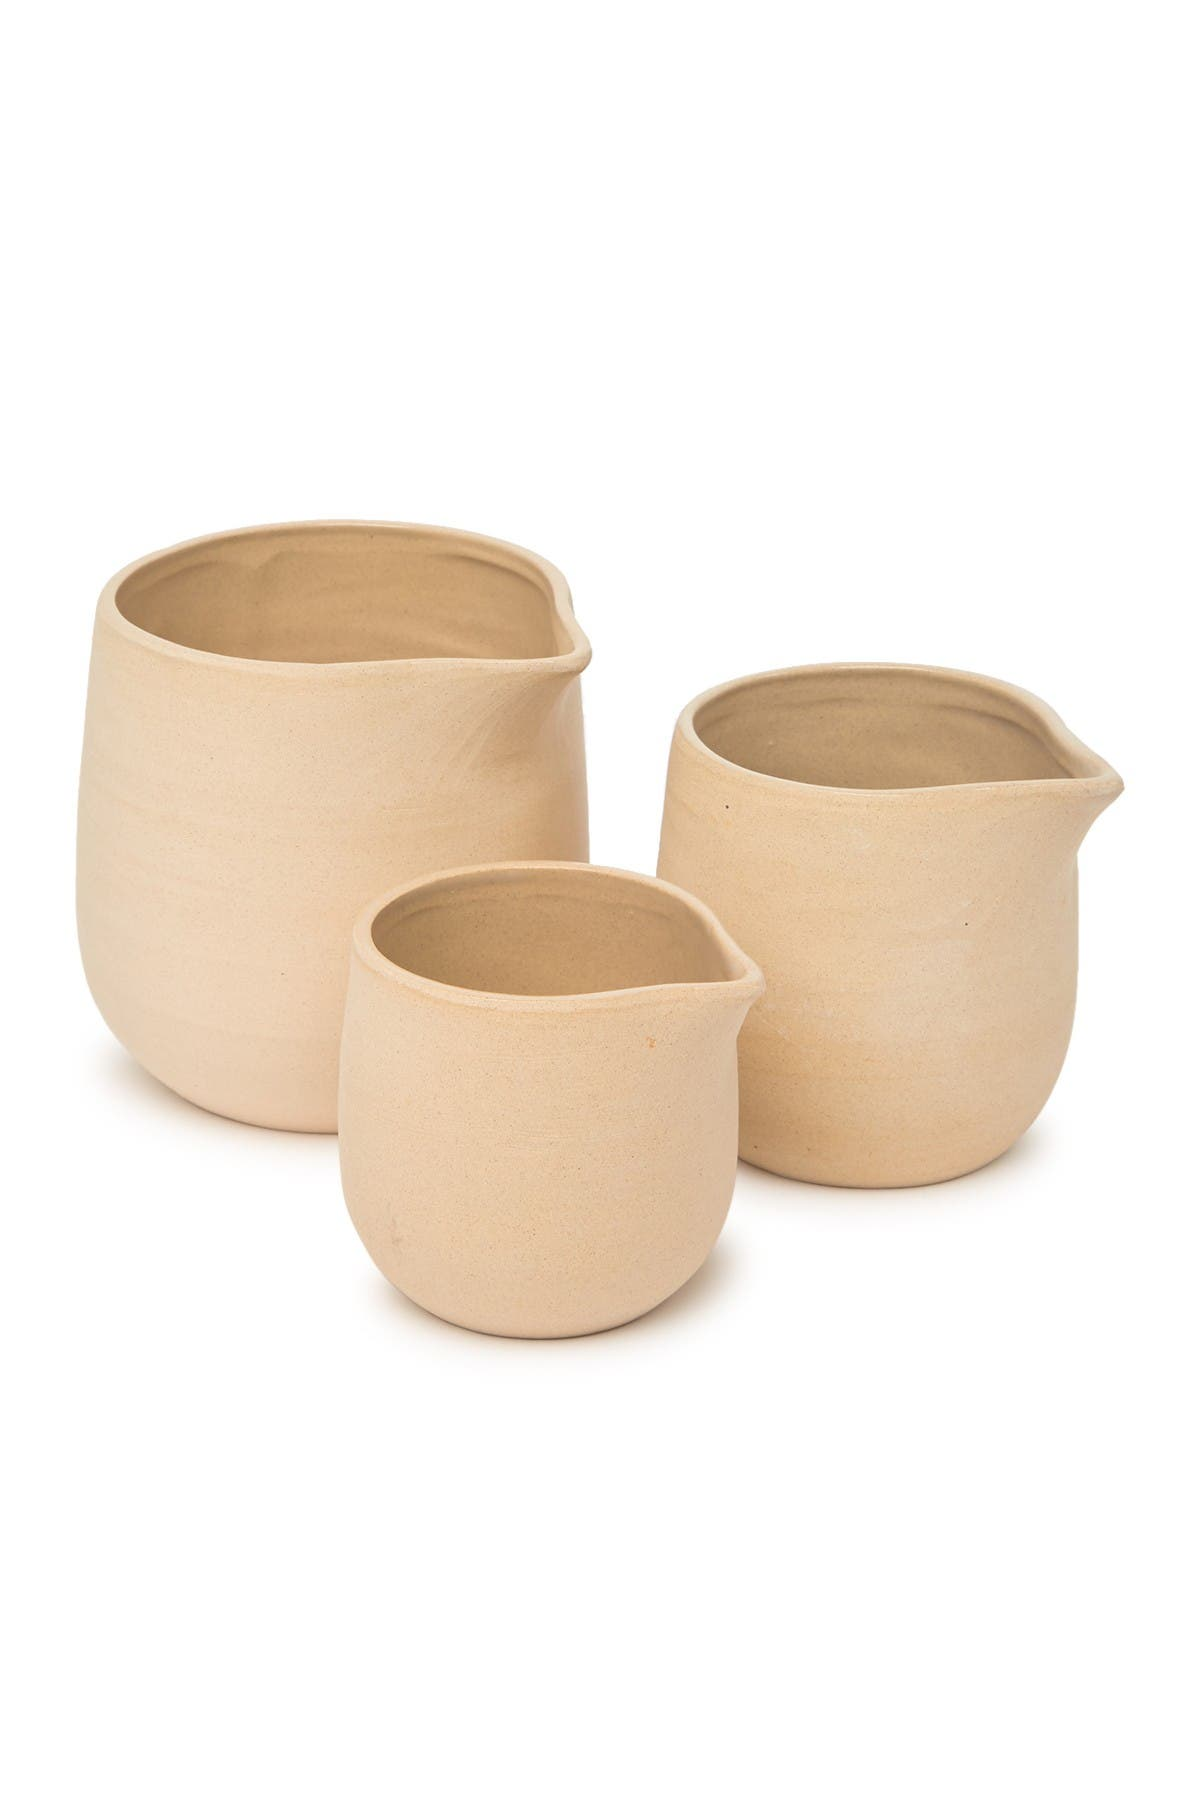 Image of ROOST Safi Stoneware Pitcher - Oat - Set of 3